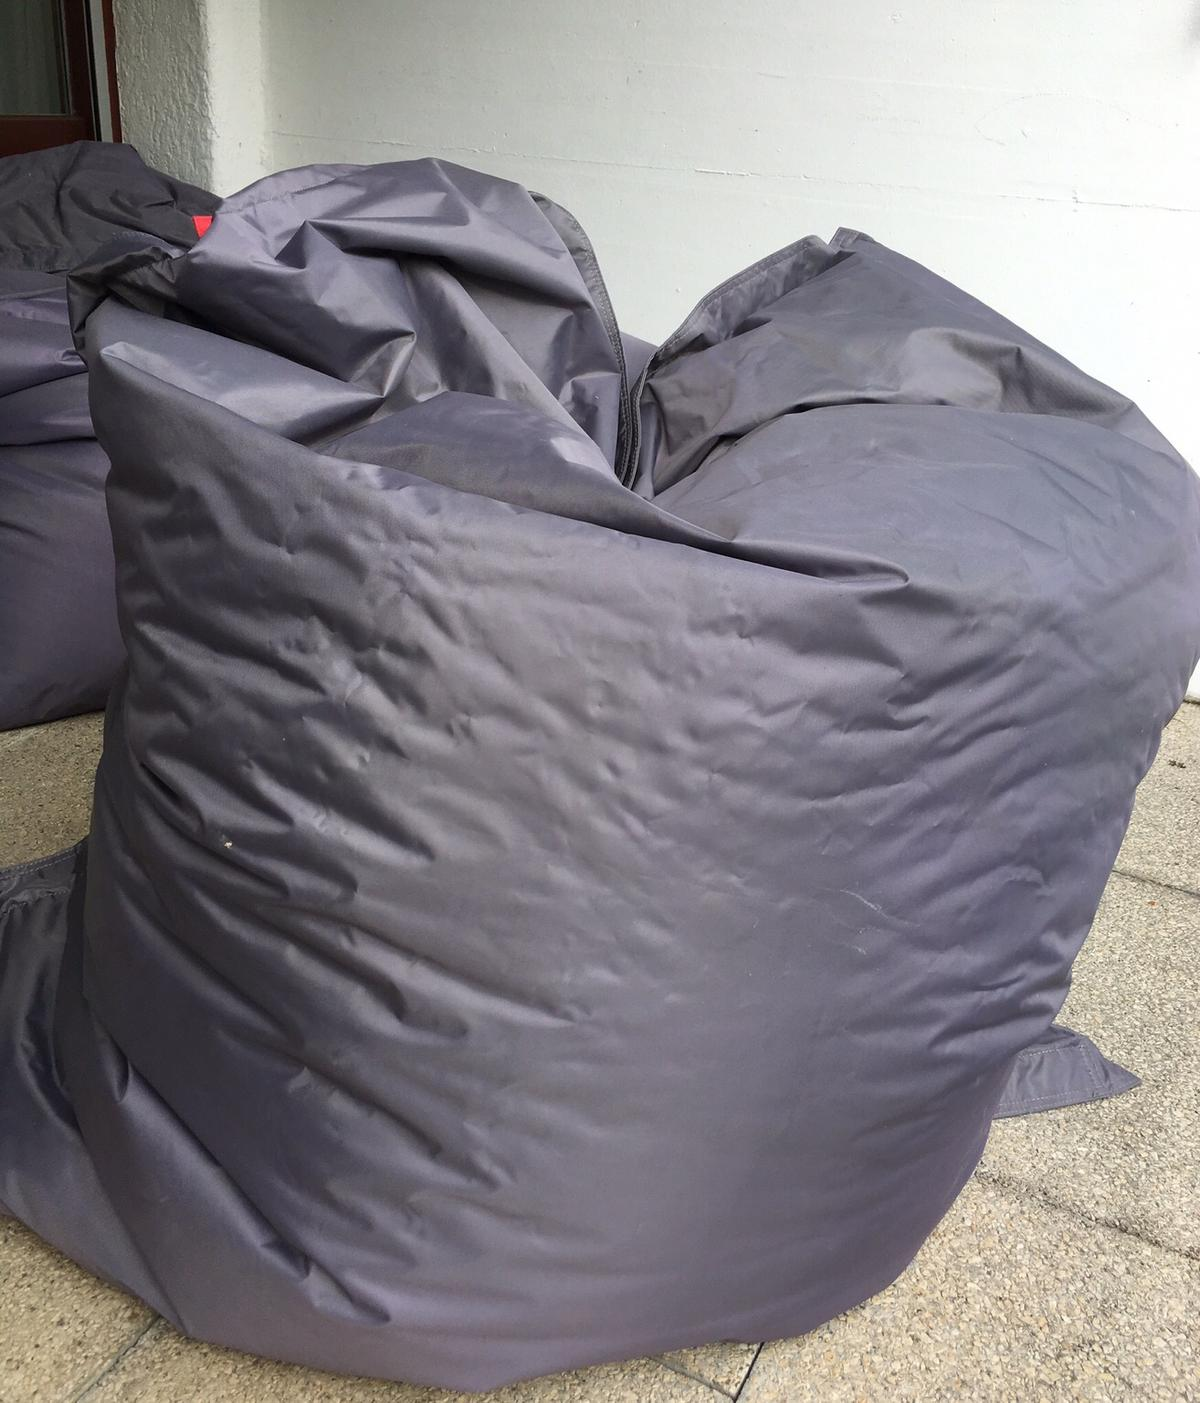 Outdoor Sitzsack Xxl Qsack Outdoor Sitzsack Xxl, Dunkelgrau In 6850 Dornbirn For €60.00 For Sale | Shpock